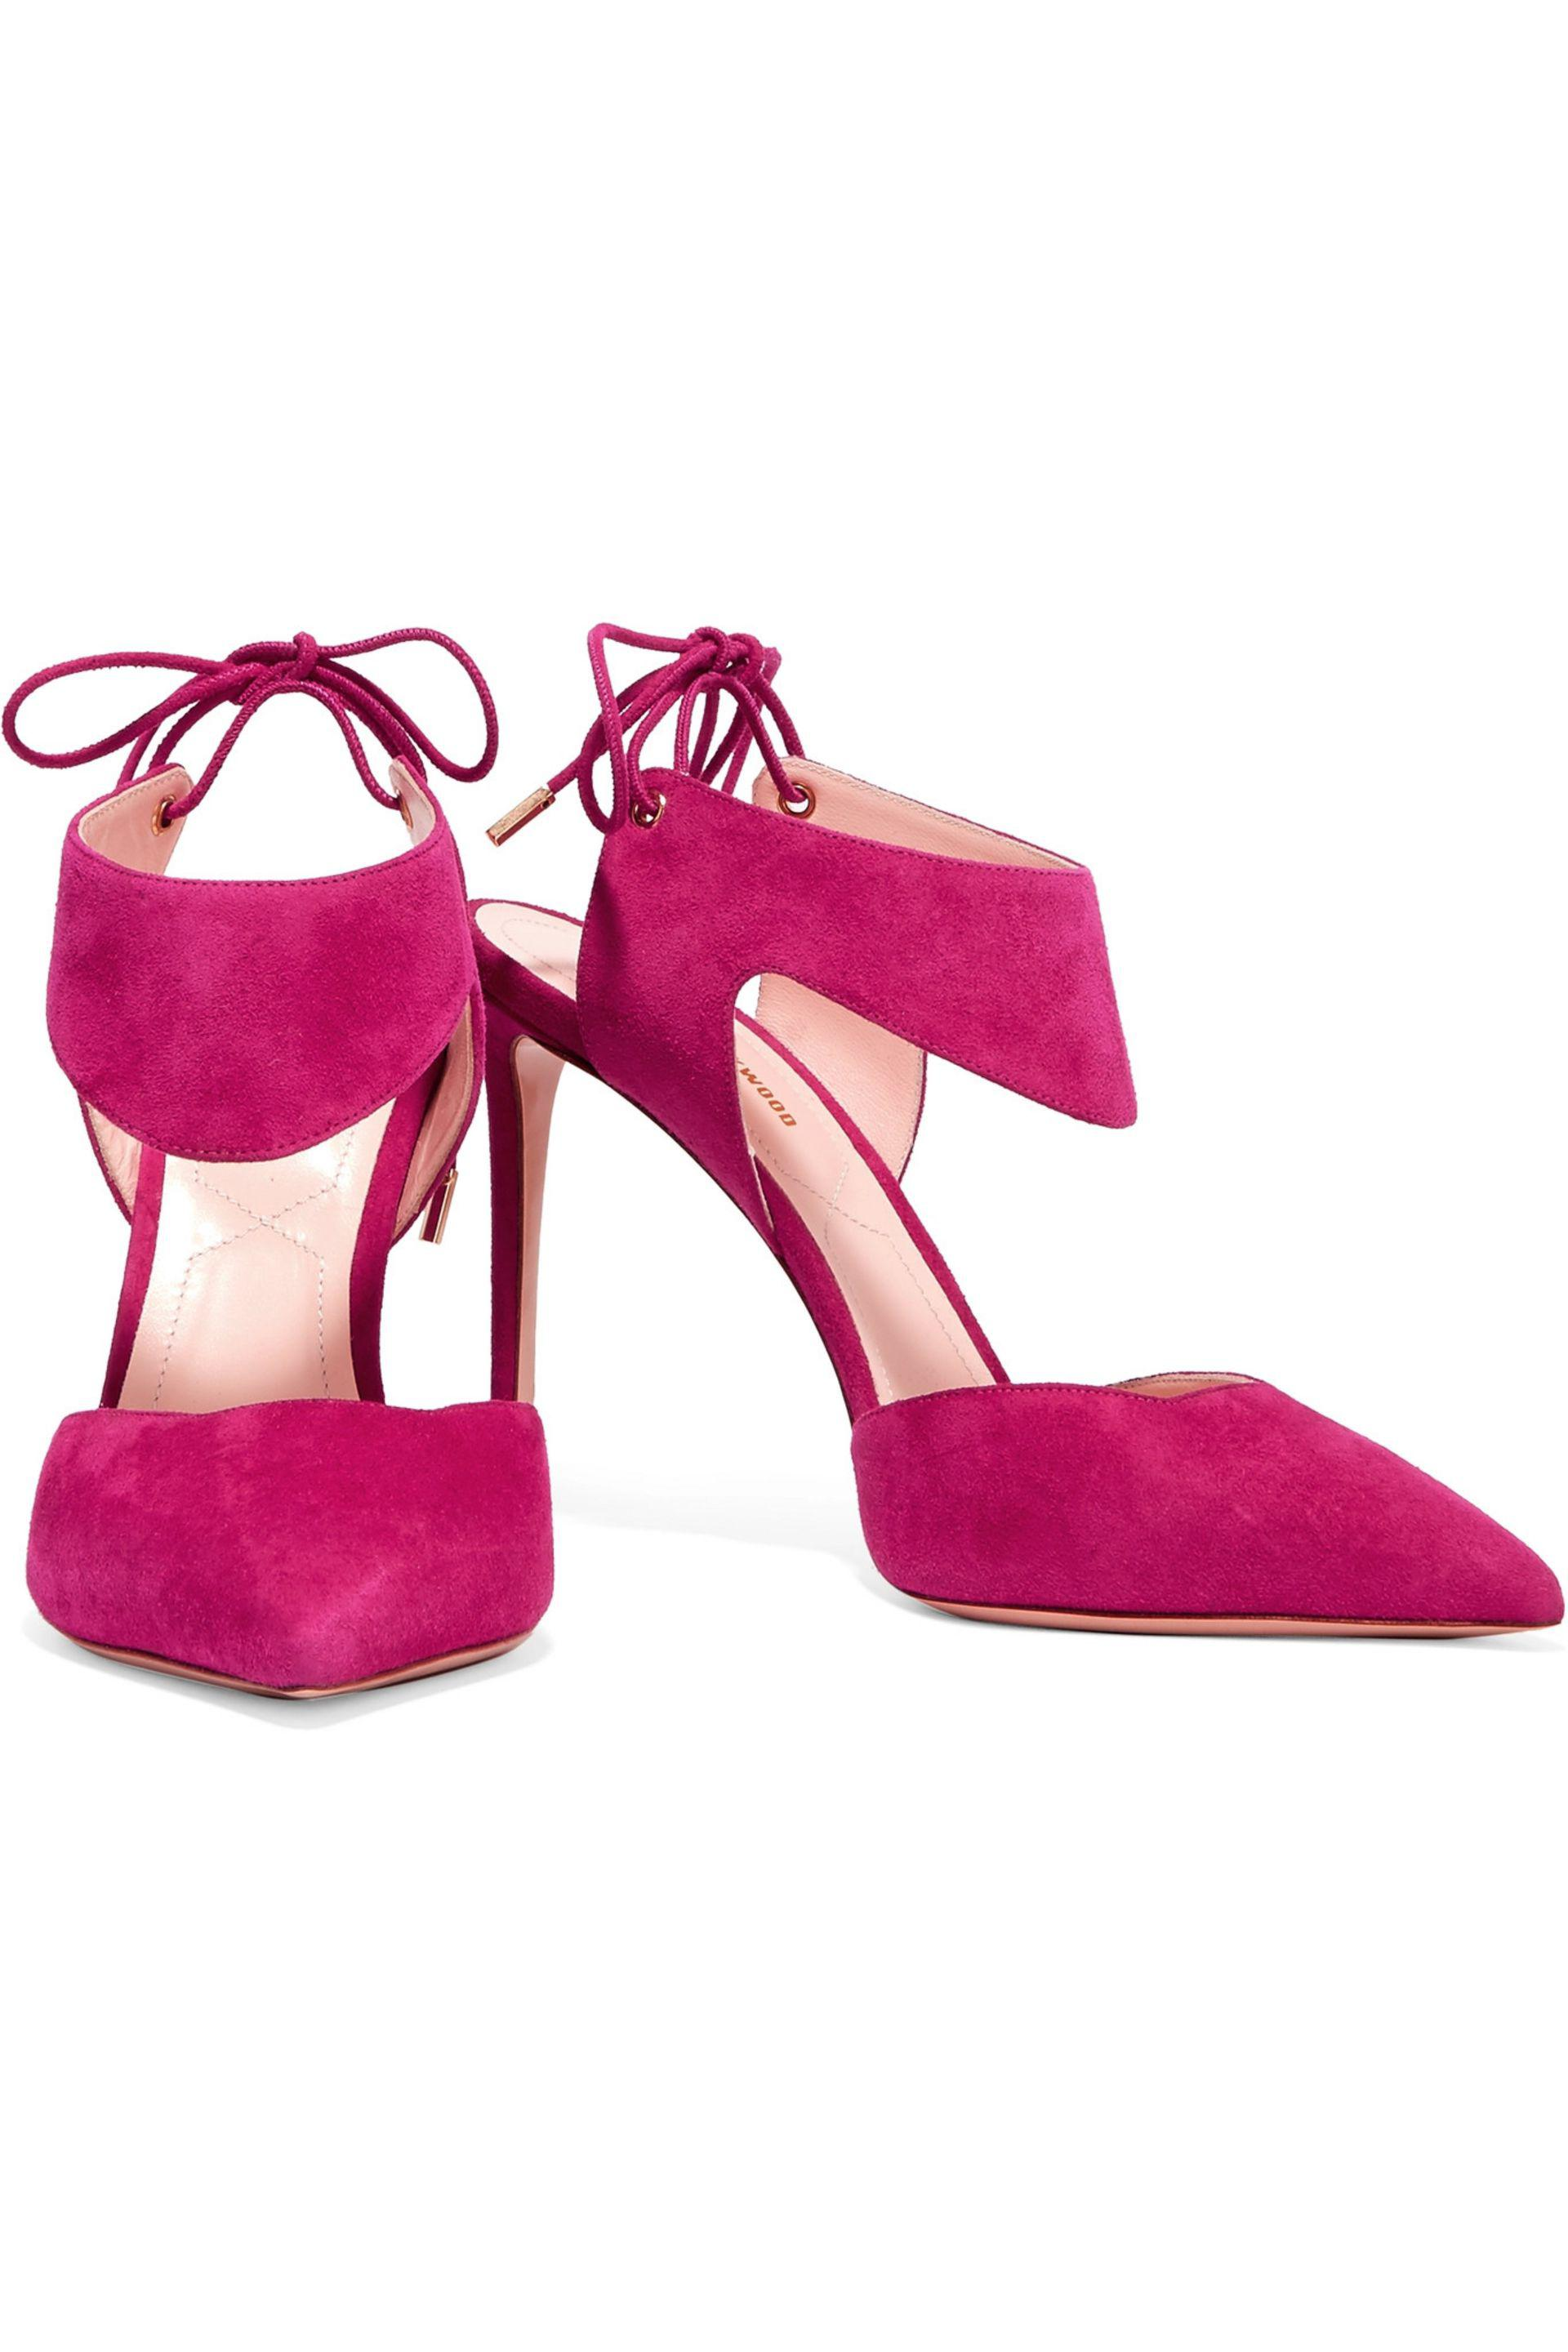 Nicholas Kirkwood | Purple Leda Suede Pumps | Lyst. View Fullscreen